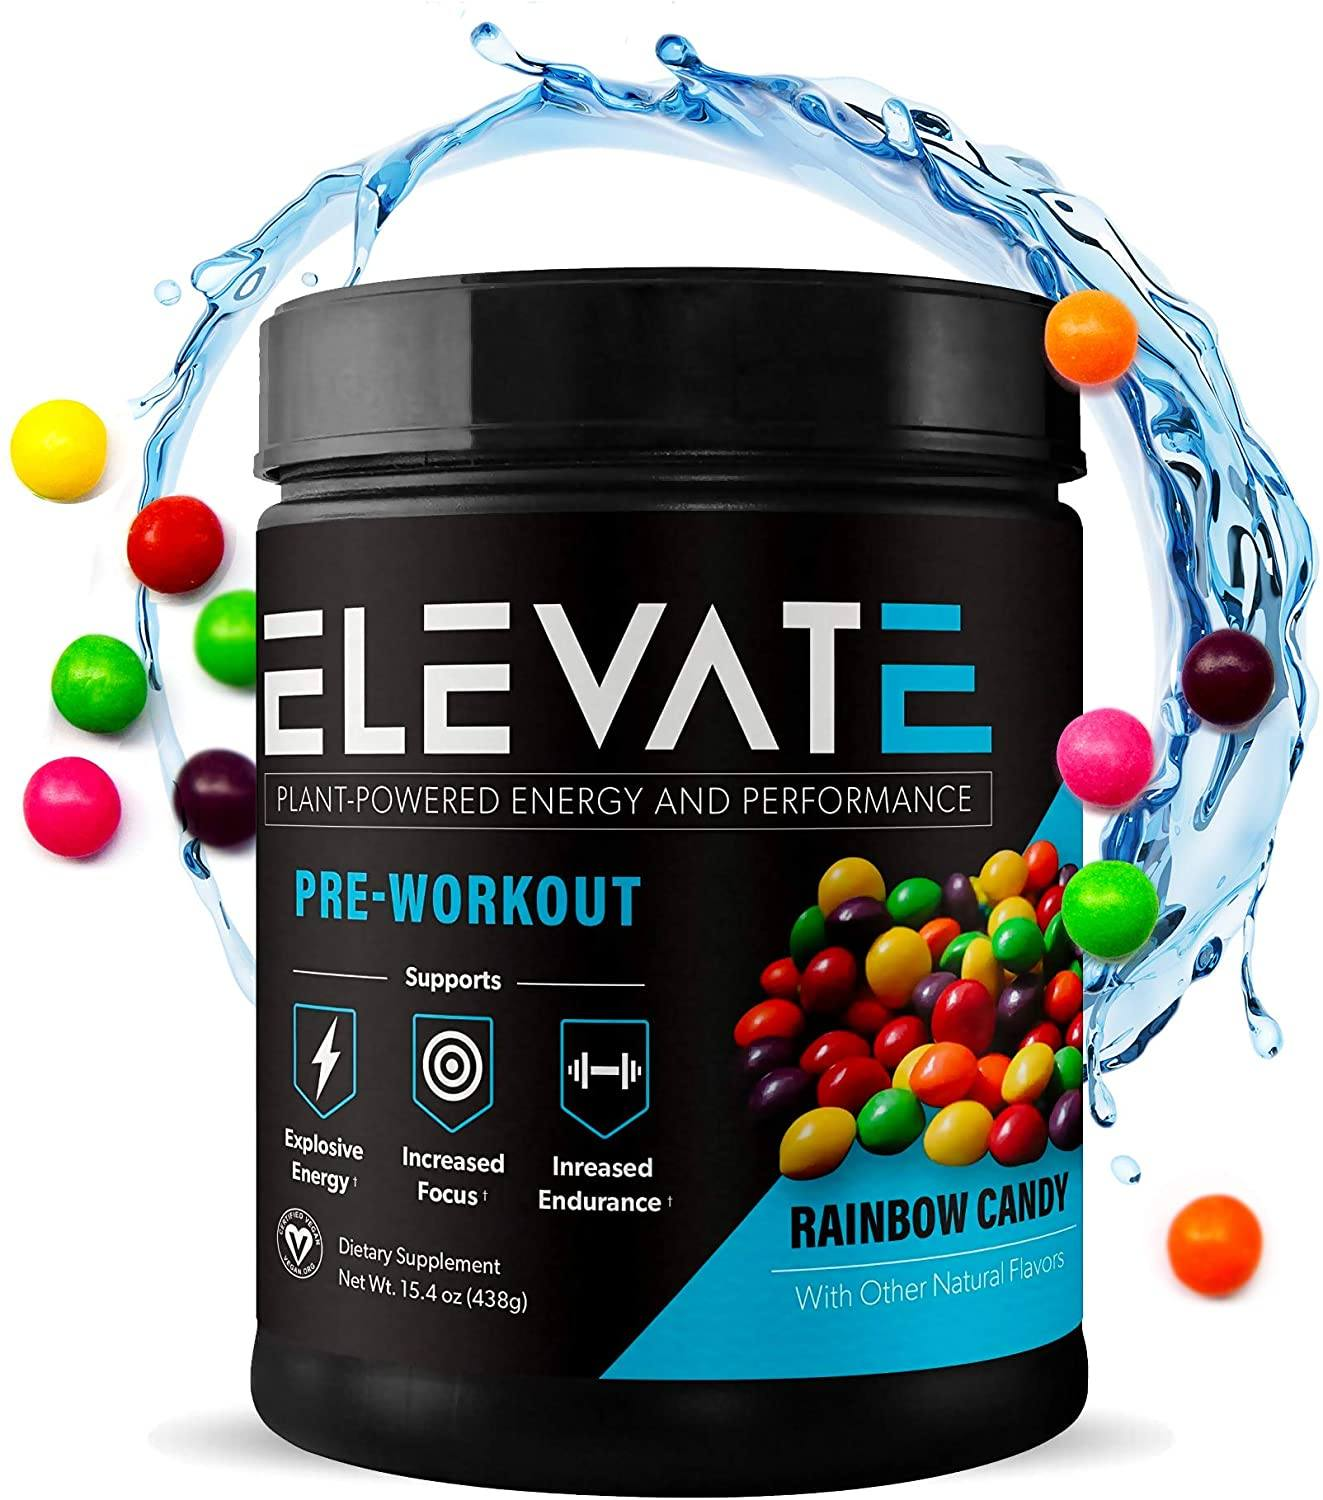 plant powdered pre workout energy powder by Elevate Nutrition 1